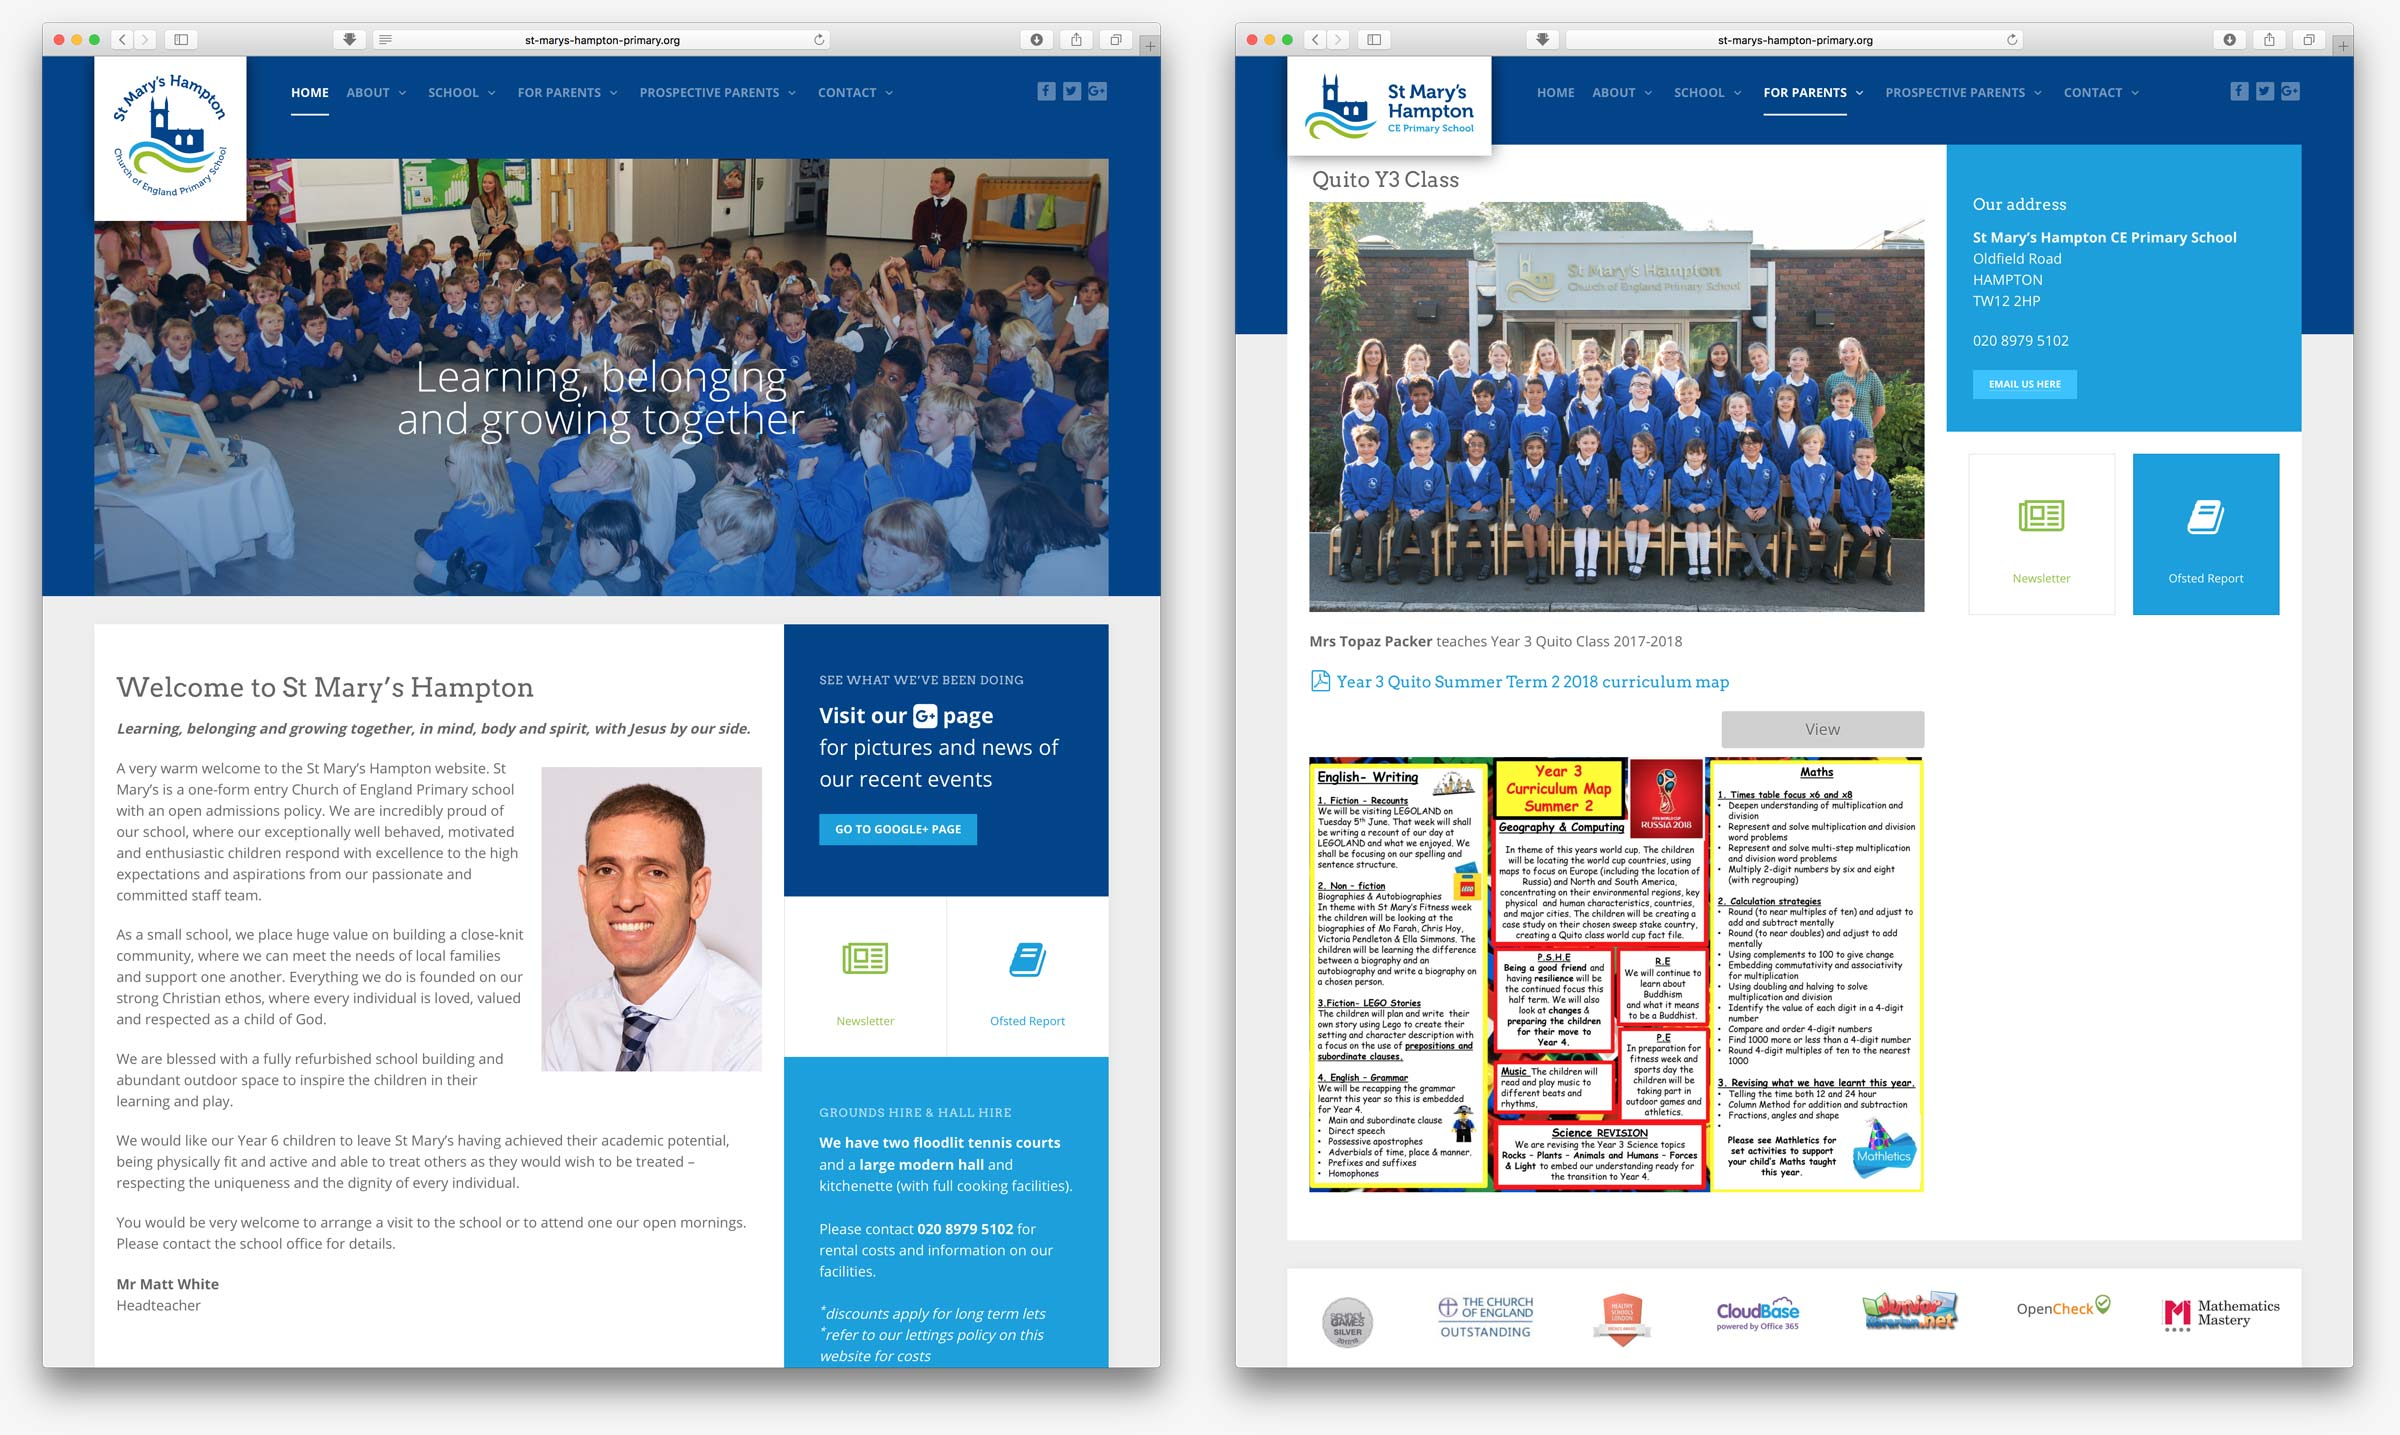 St Mary's primary school website